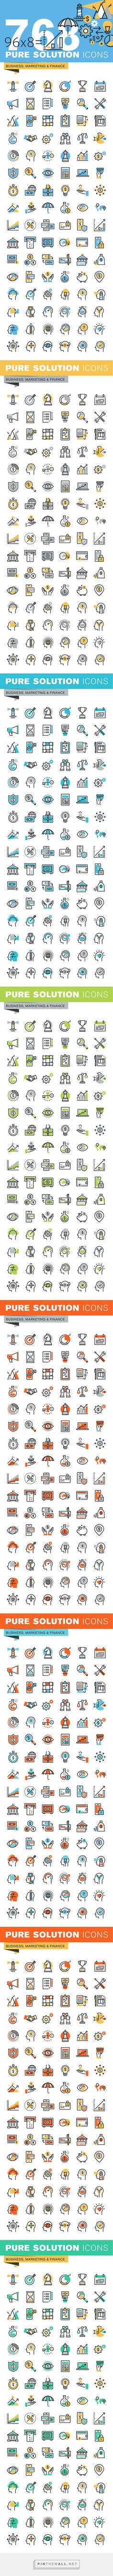 best icon set images on Pinterest Graph design Icon design and